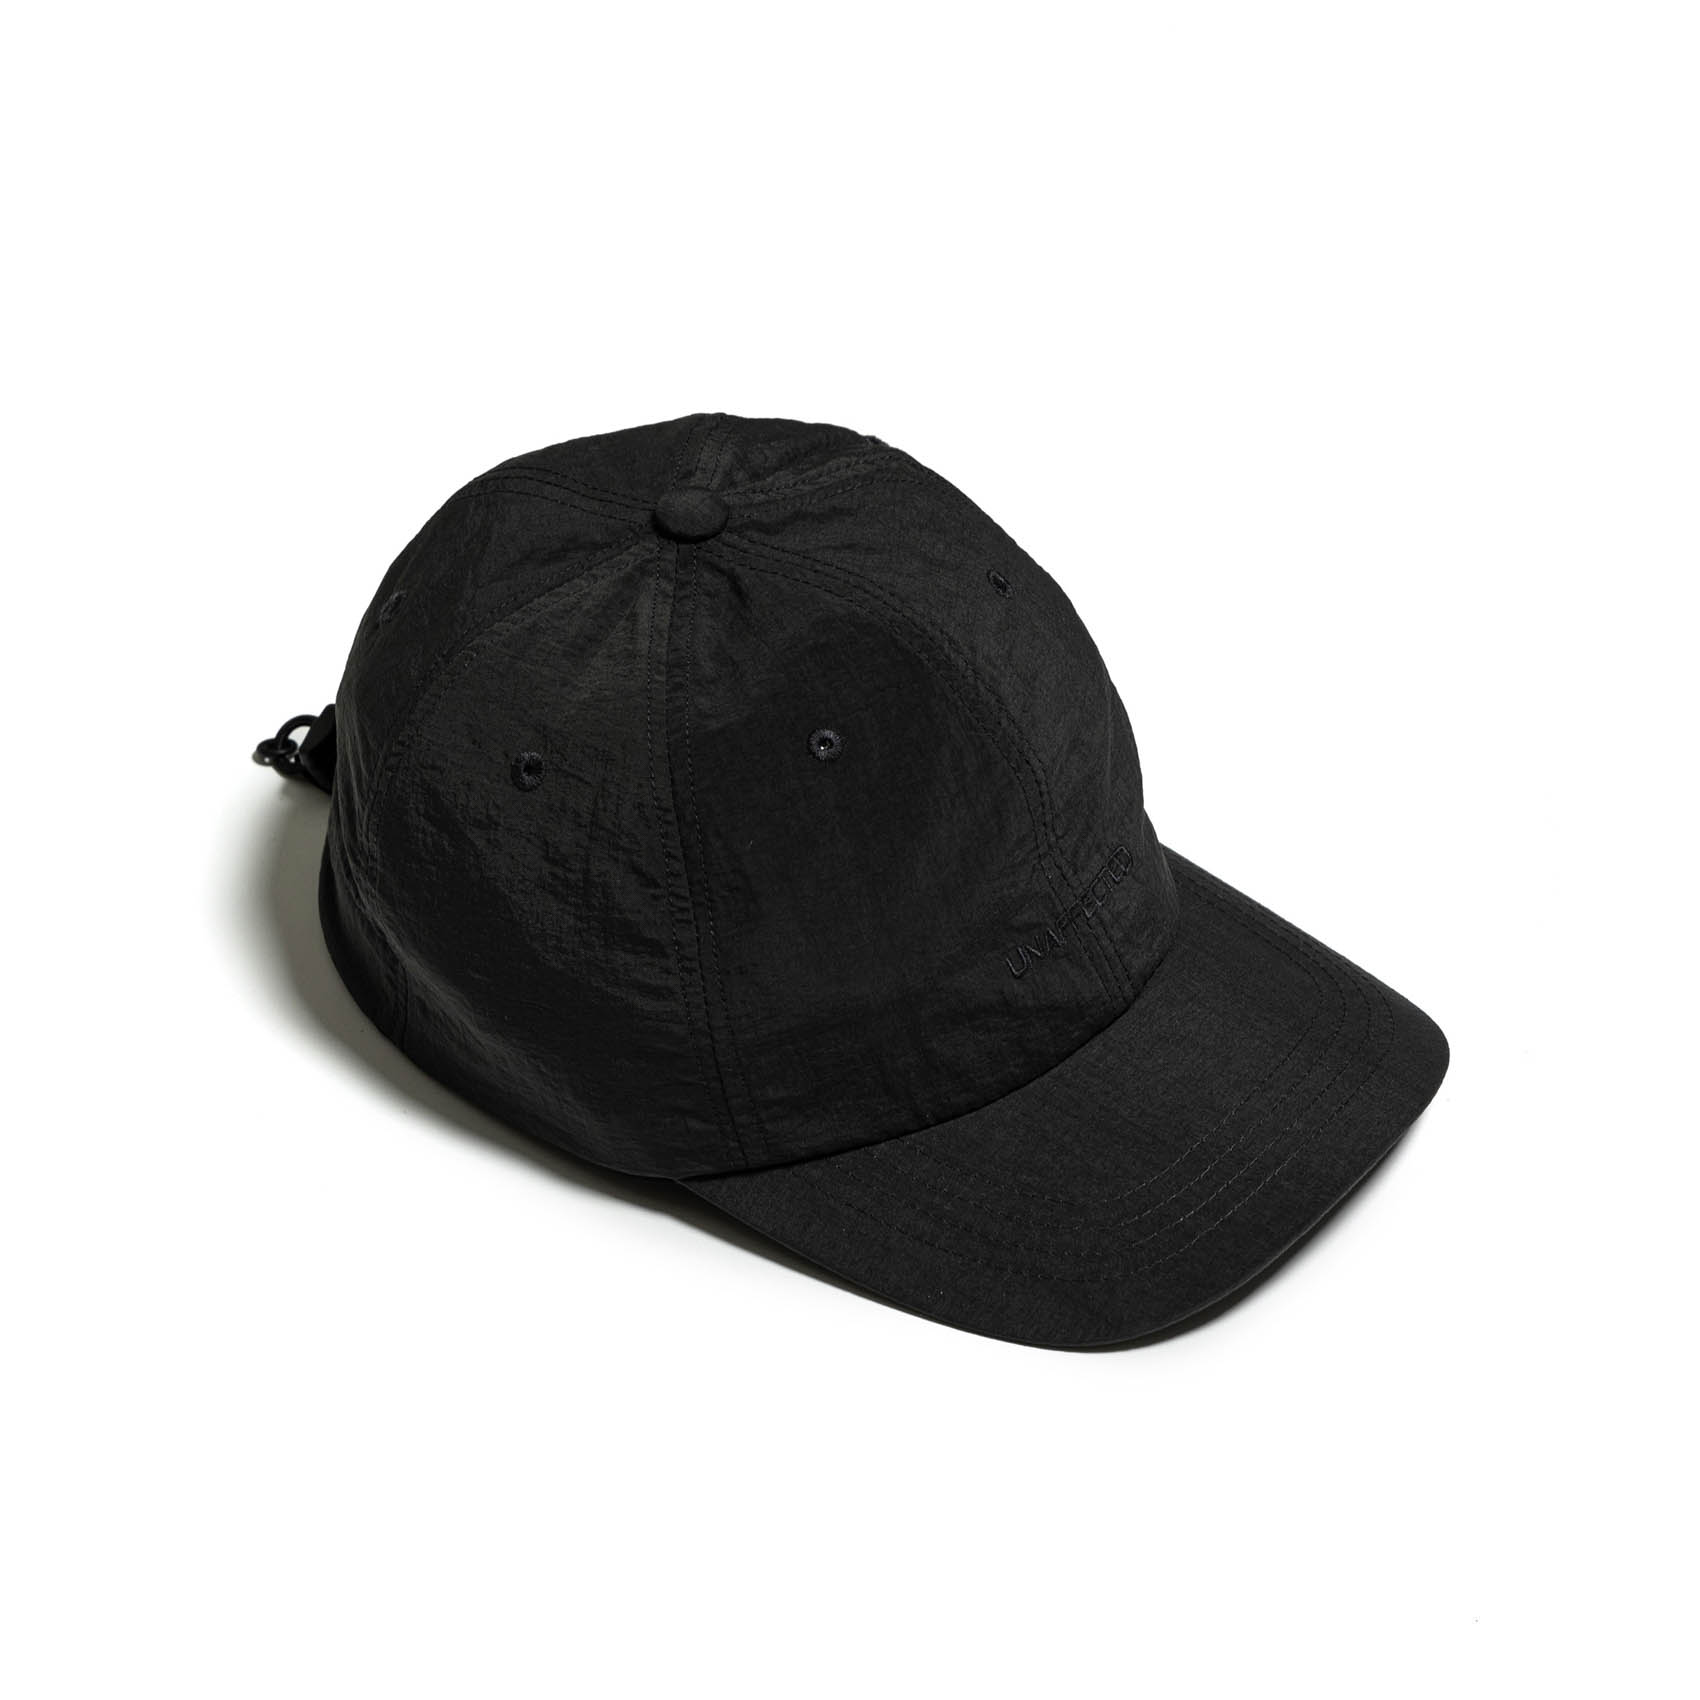 LOGO DRAWSTRING BALL CAP - CHARCOAL